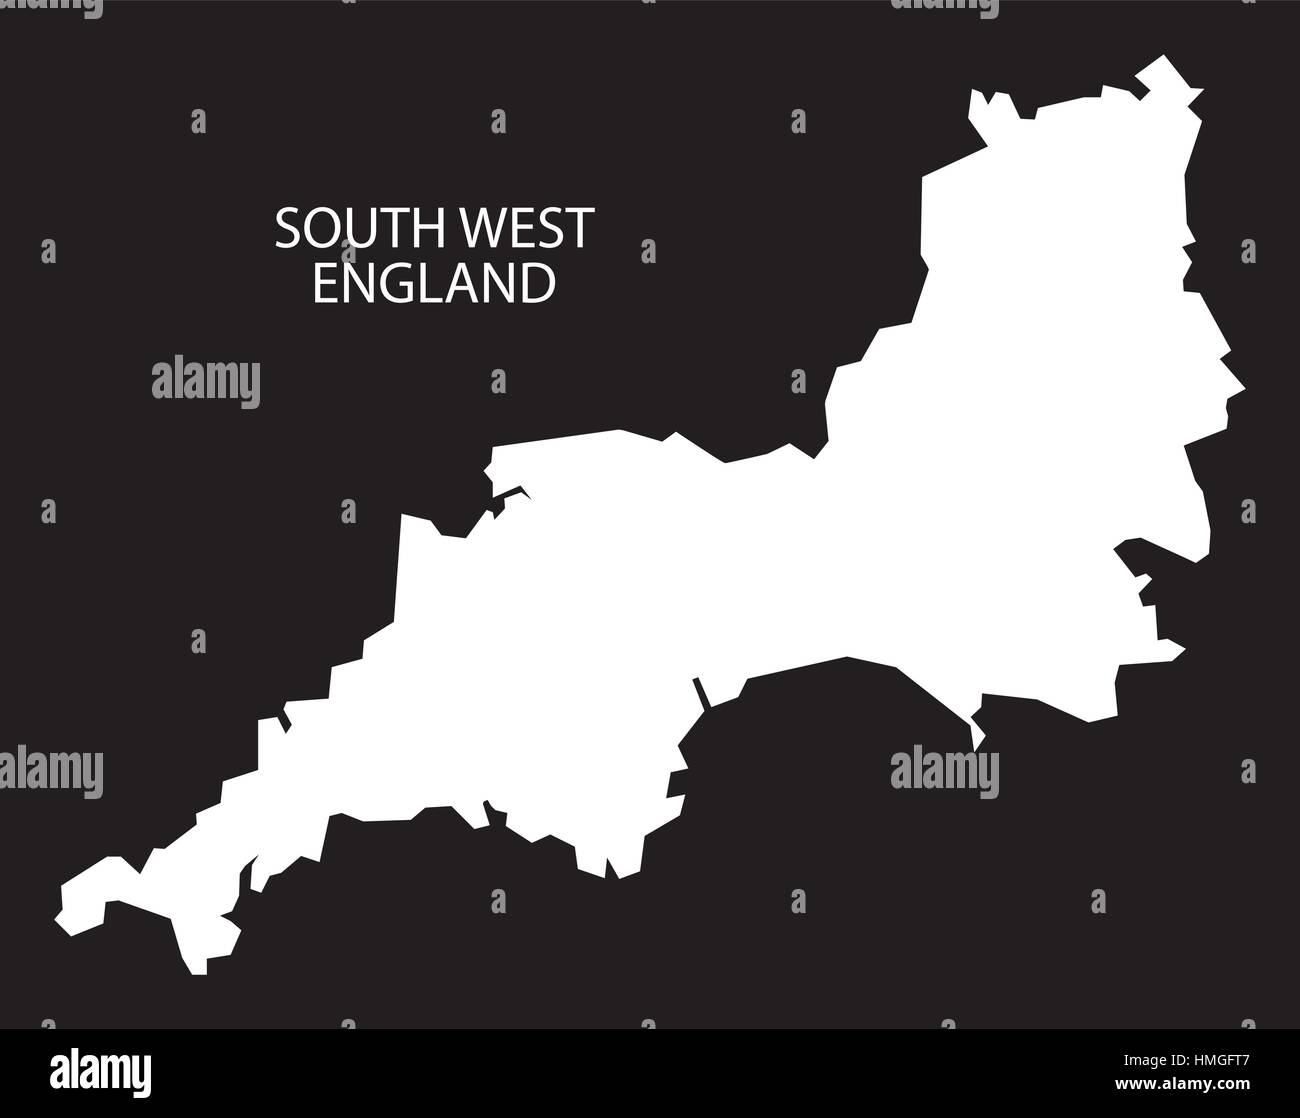 Map Of The South West Of England.South West England Map Black Inverted Silhouette Stock Vector Art